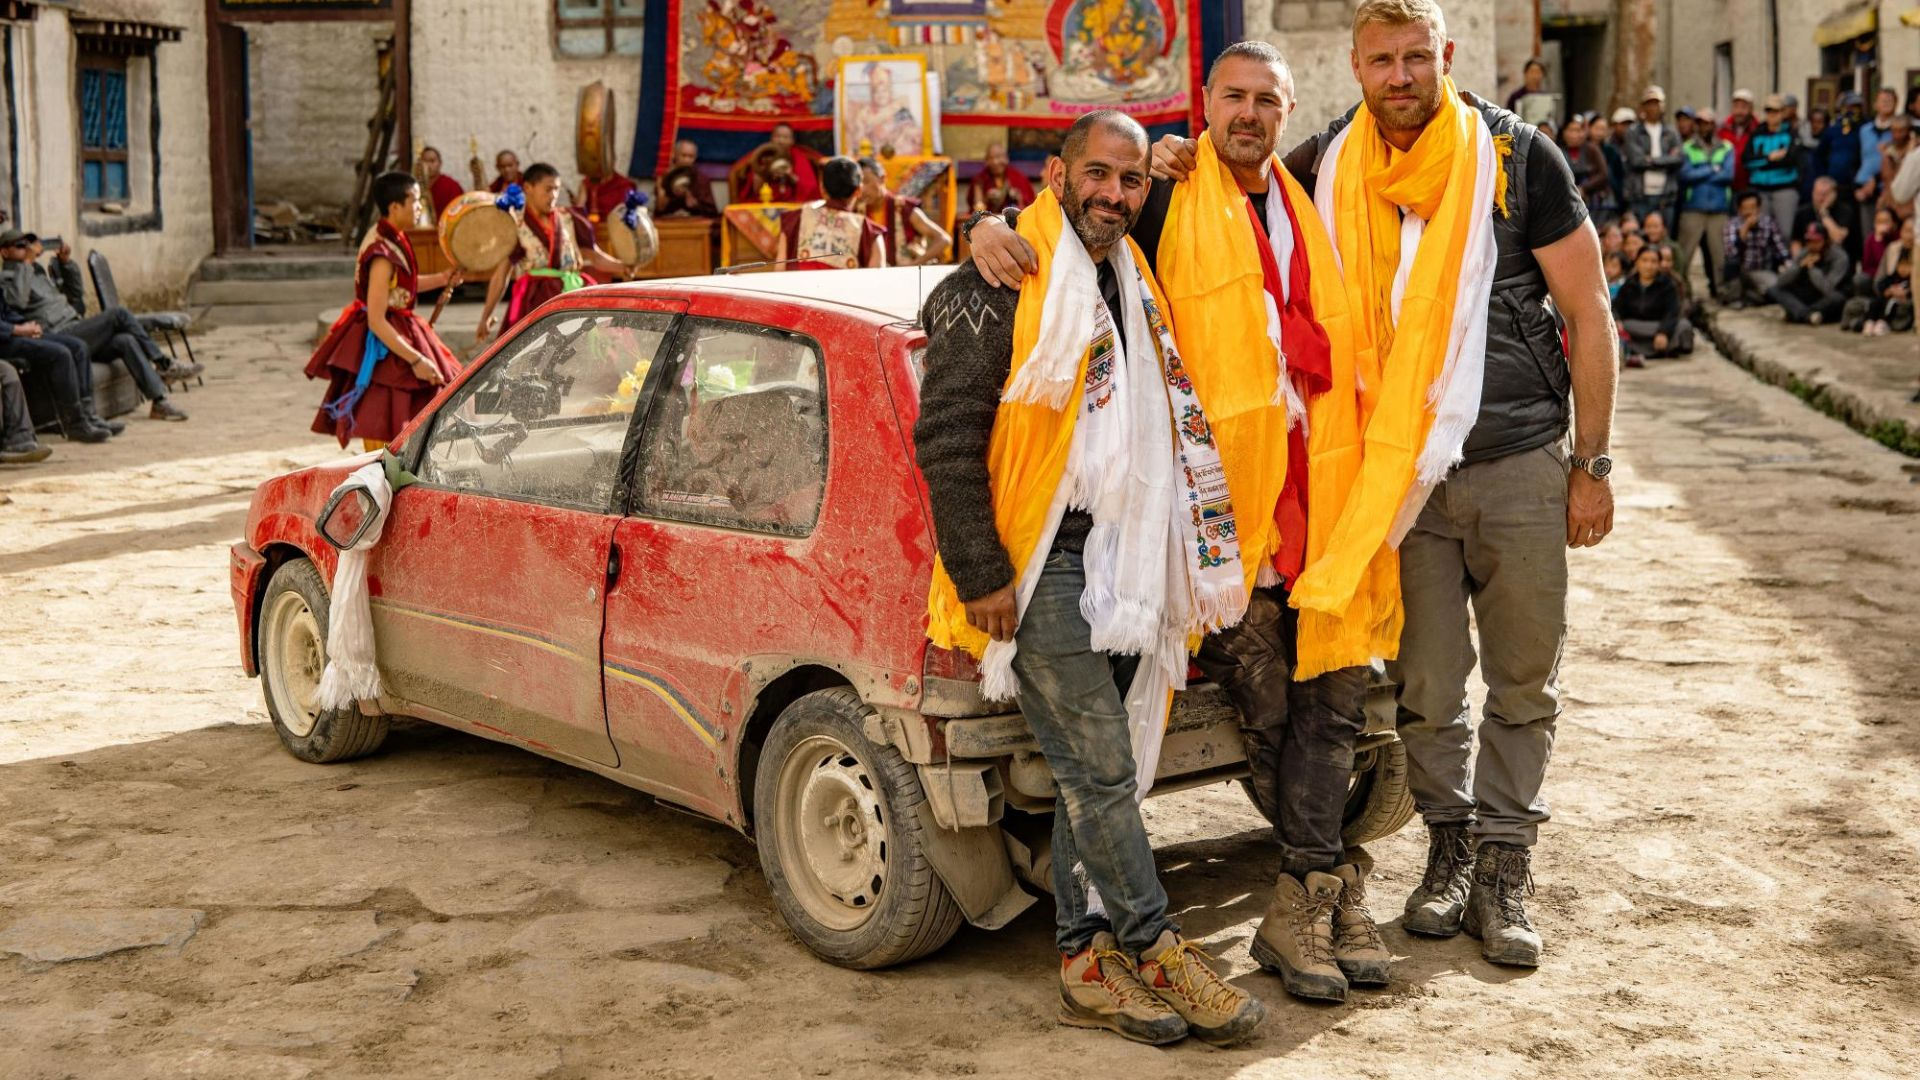 Top Gear Nepal cars on display during February half term